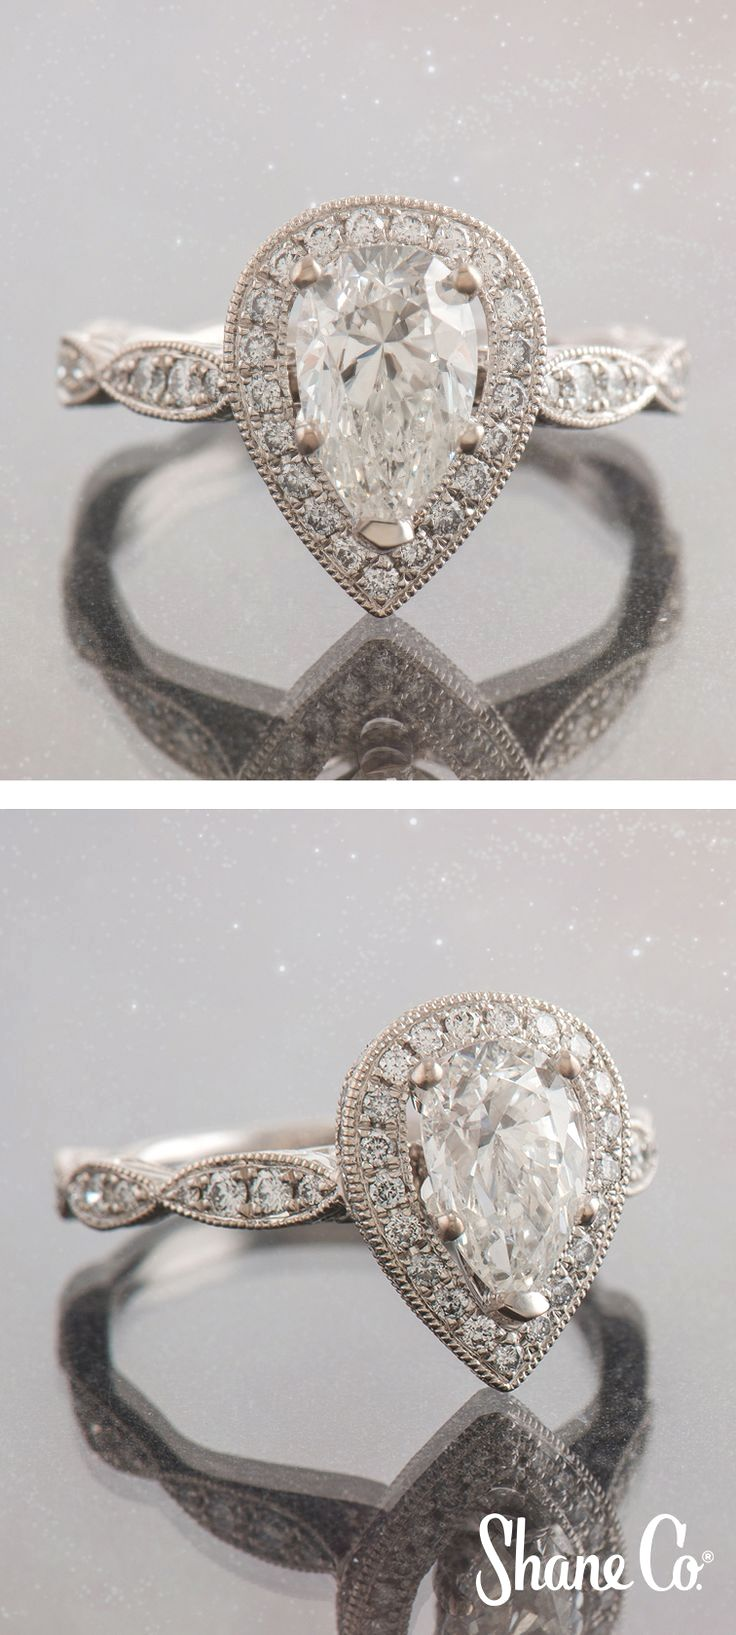 If you love vintage inspired engagement rings then you will go crazy over this @shaneco engagement ring!